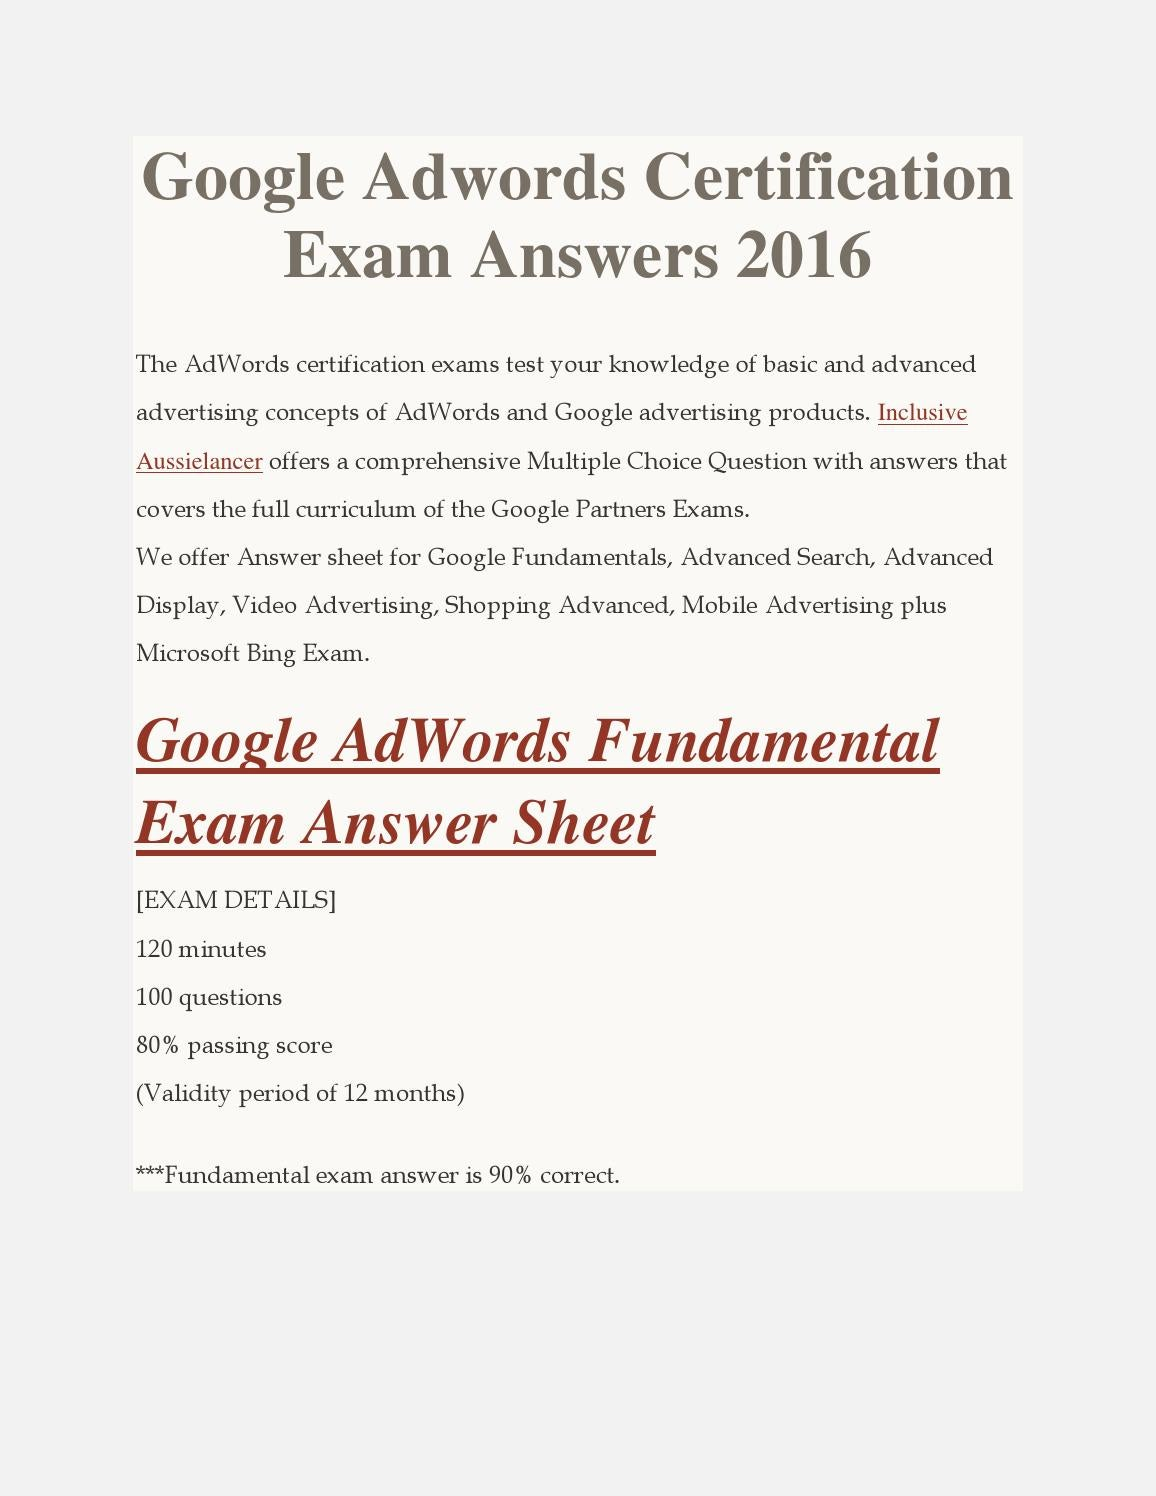 Google adwords certification exam answers 2016 by inclusive google adwords certification exam answers 2016 by inclusive aussielancer issuu xflitez Image collections